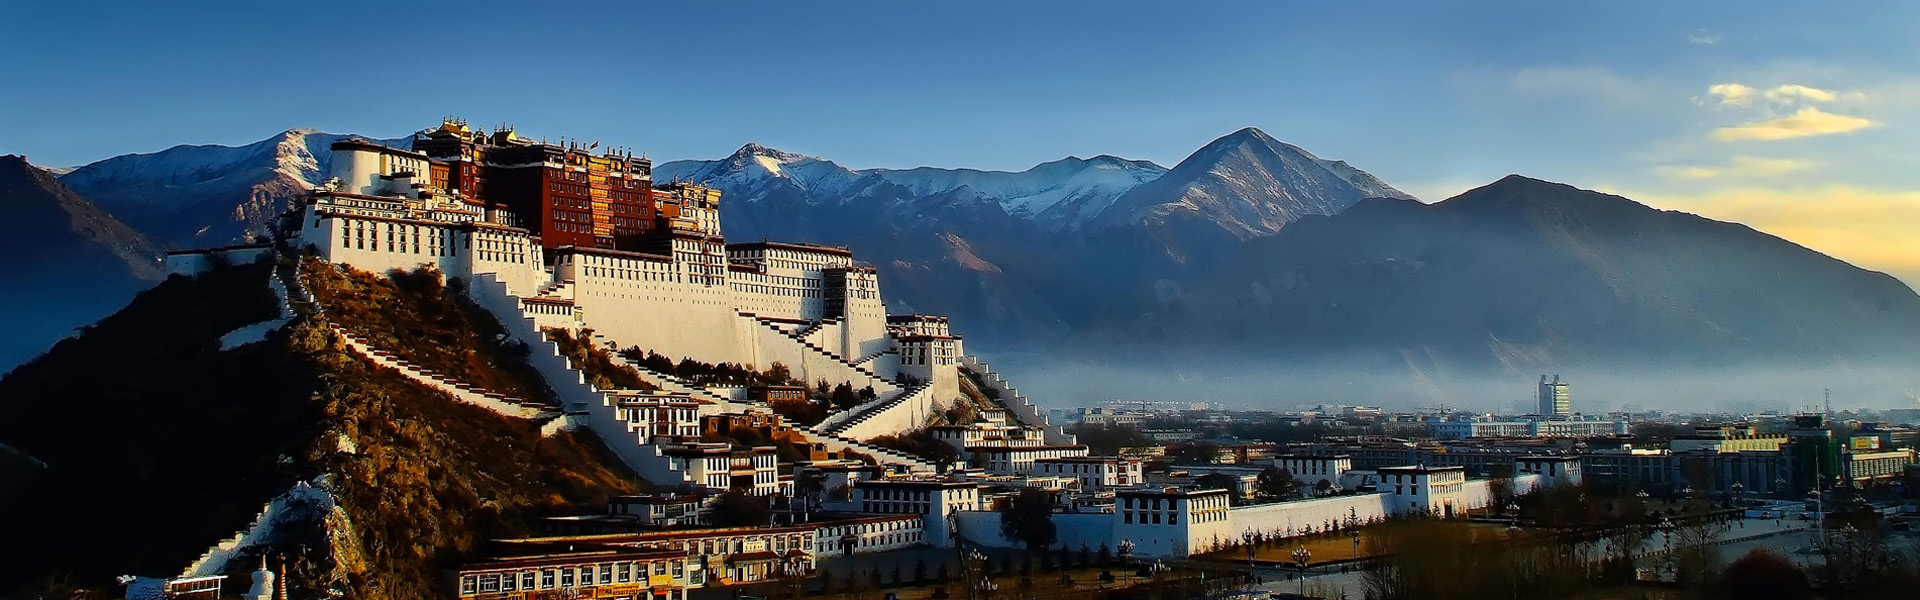 Image result for The Potala Palace in Lhasa